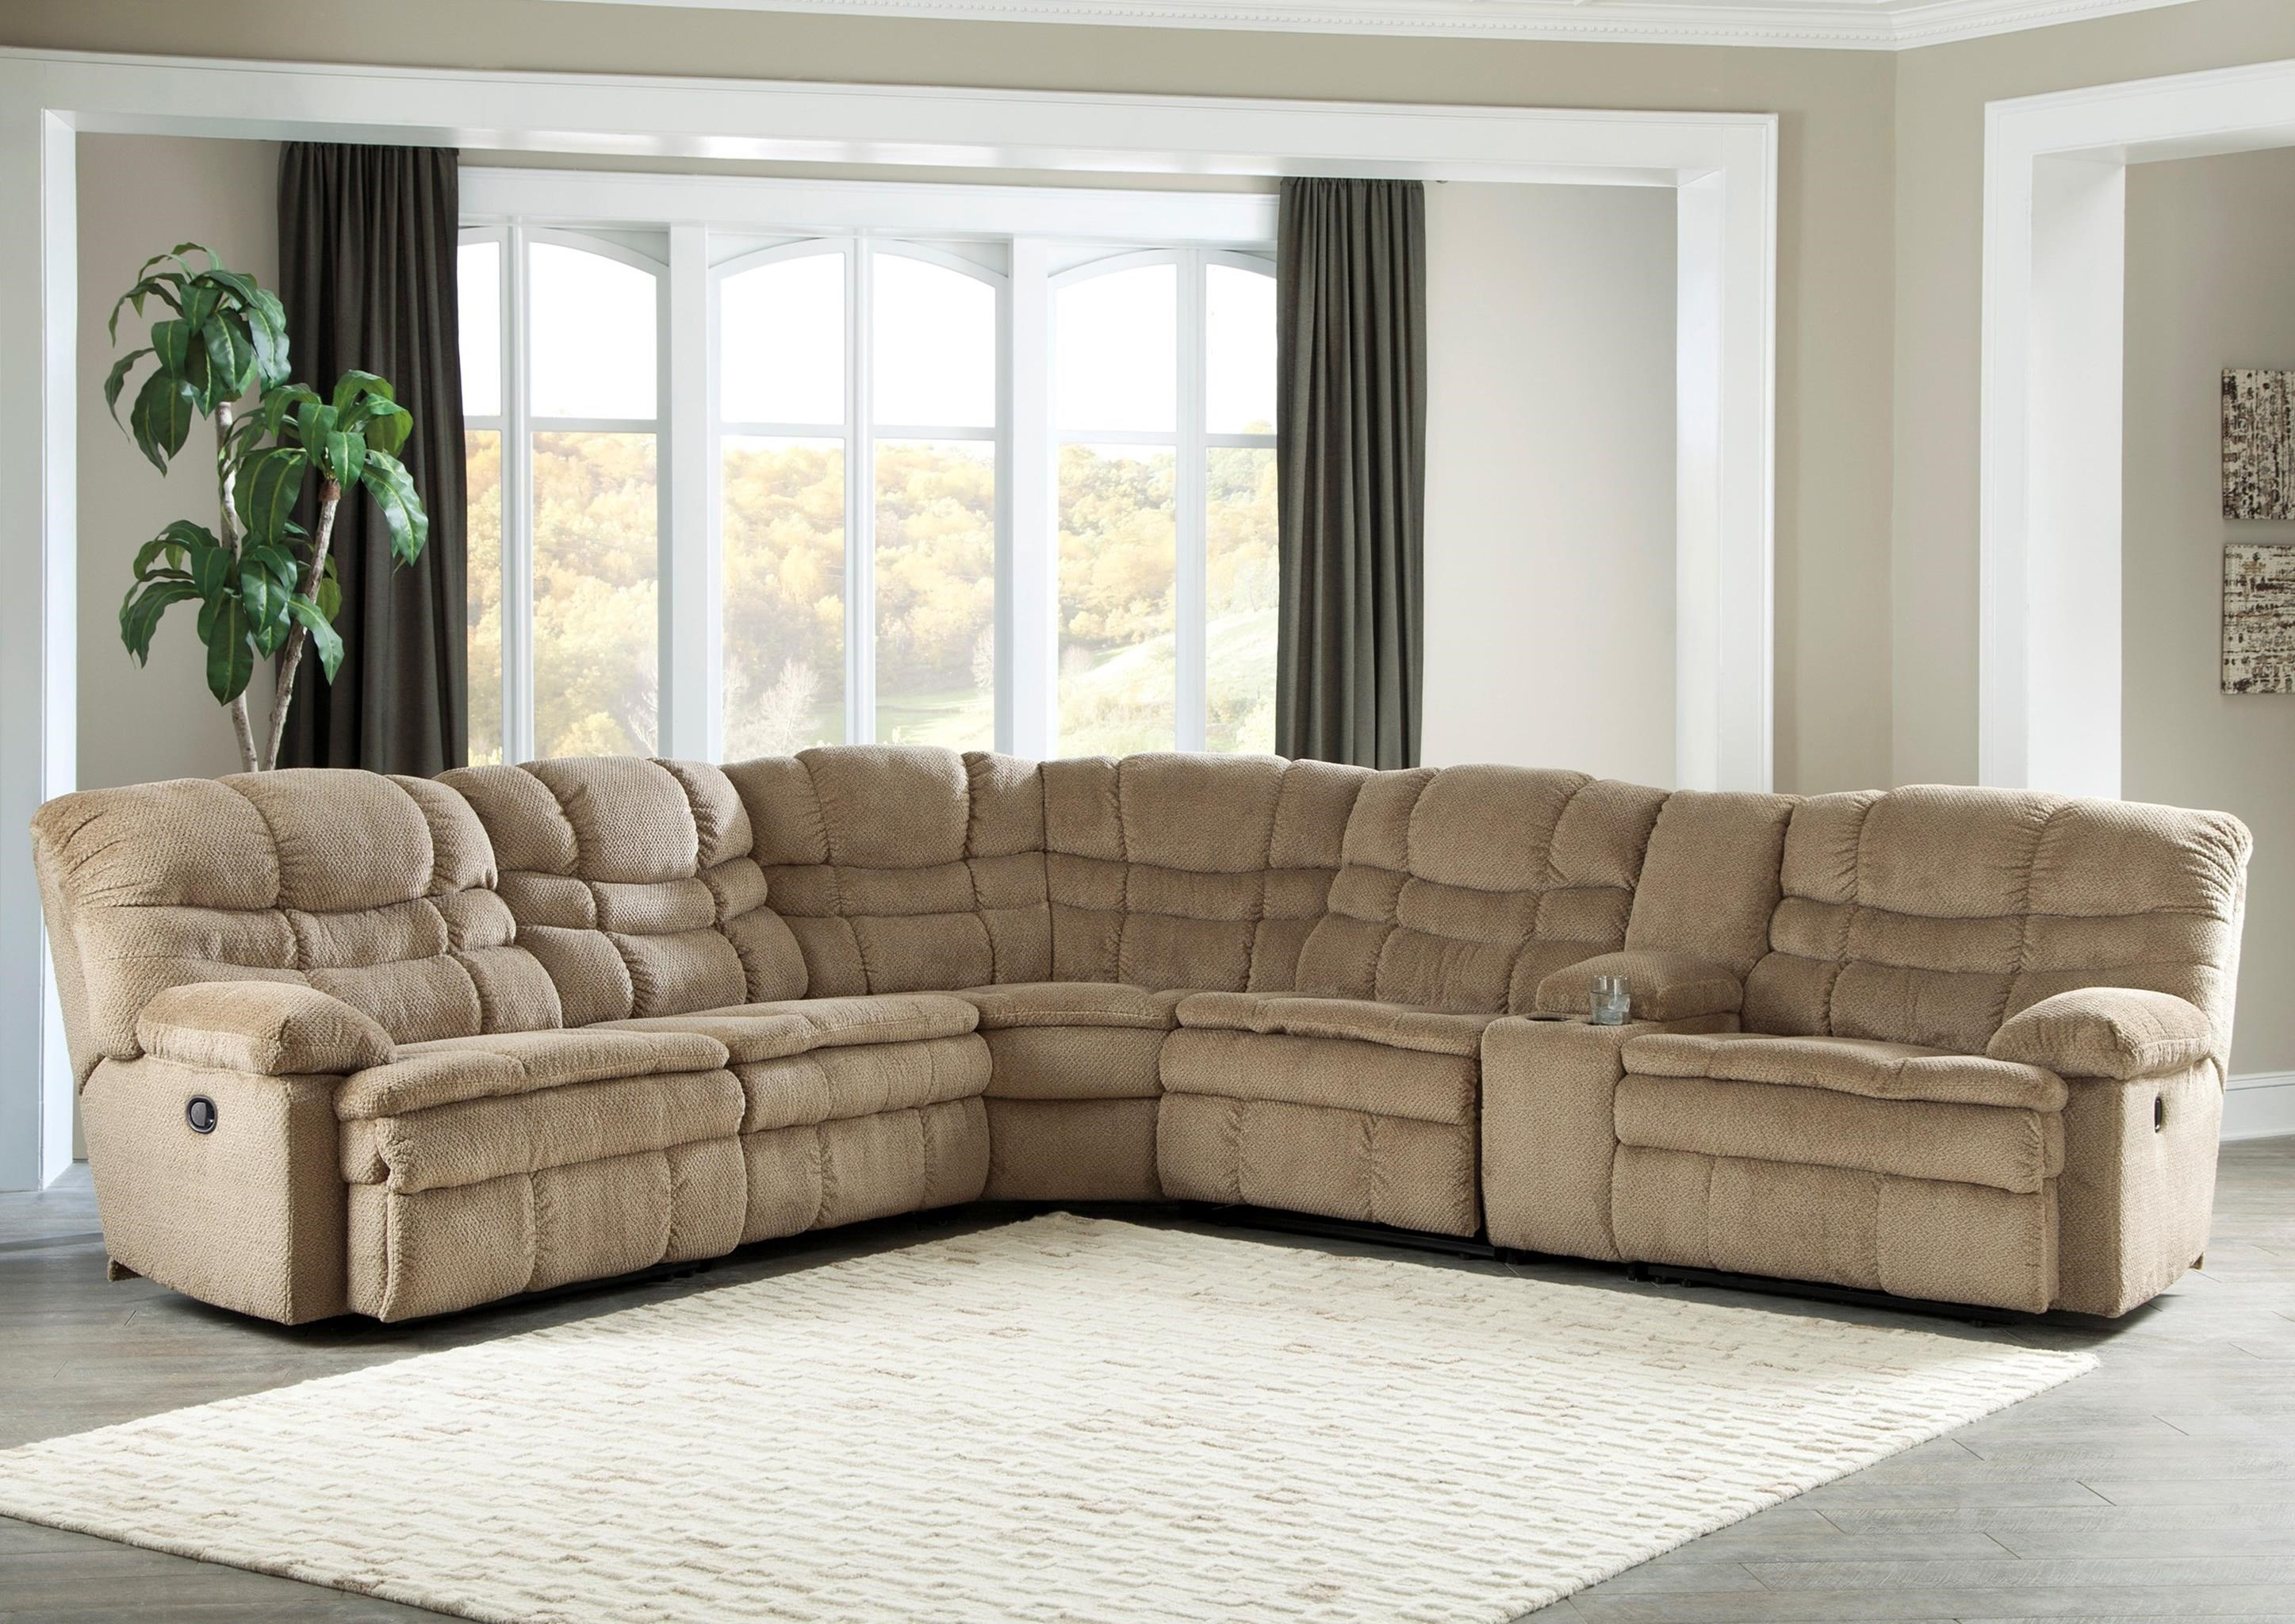 Signature Design by Ashley Zavion 6Pc Recl Sectional w/ Storage Console - Item Number: 6630340+46+77+19+57+41